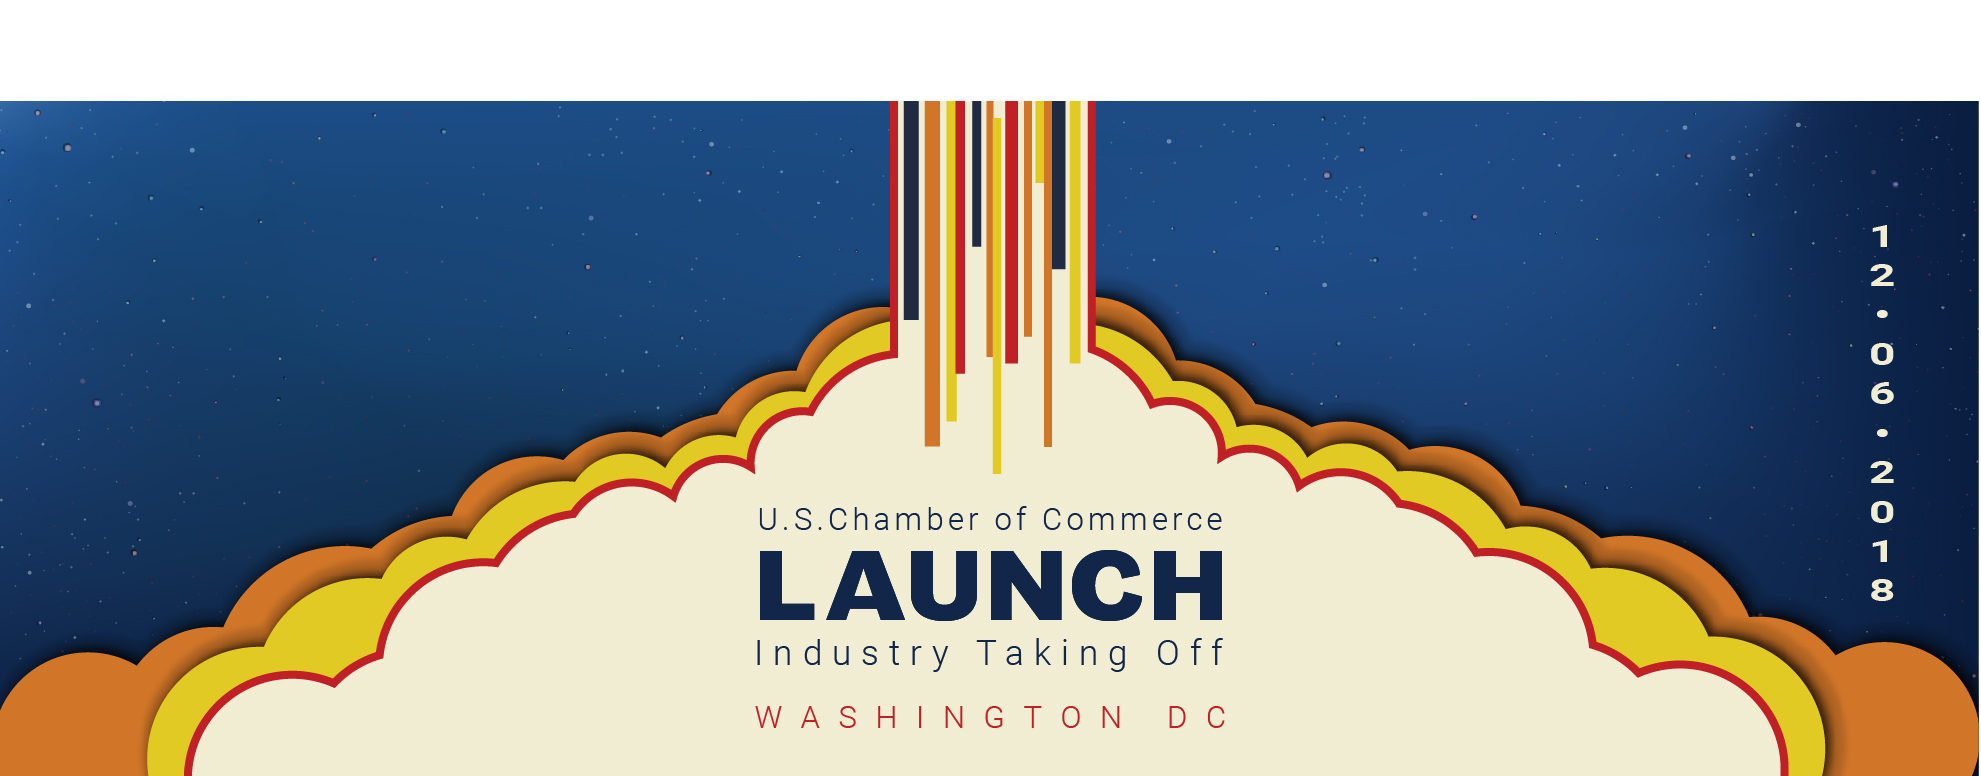 LAUNCH: Industry Taking Off